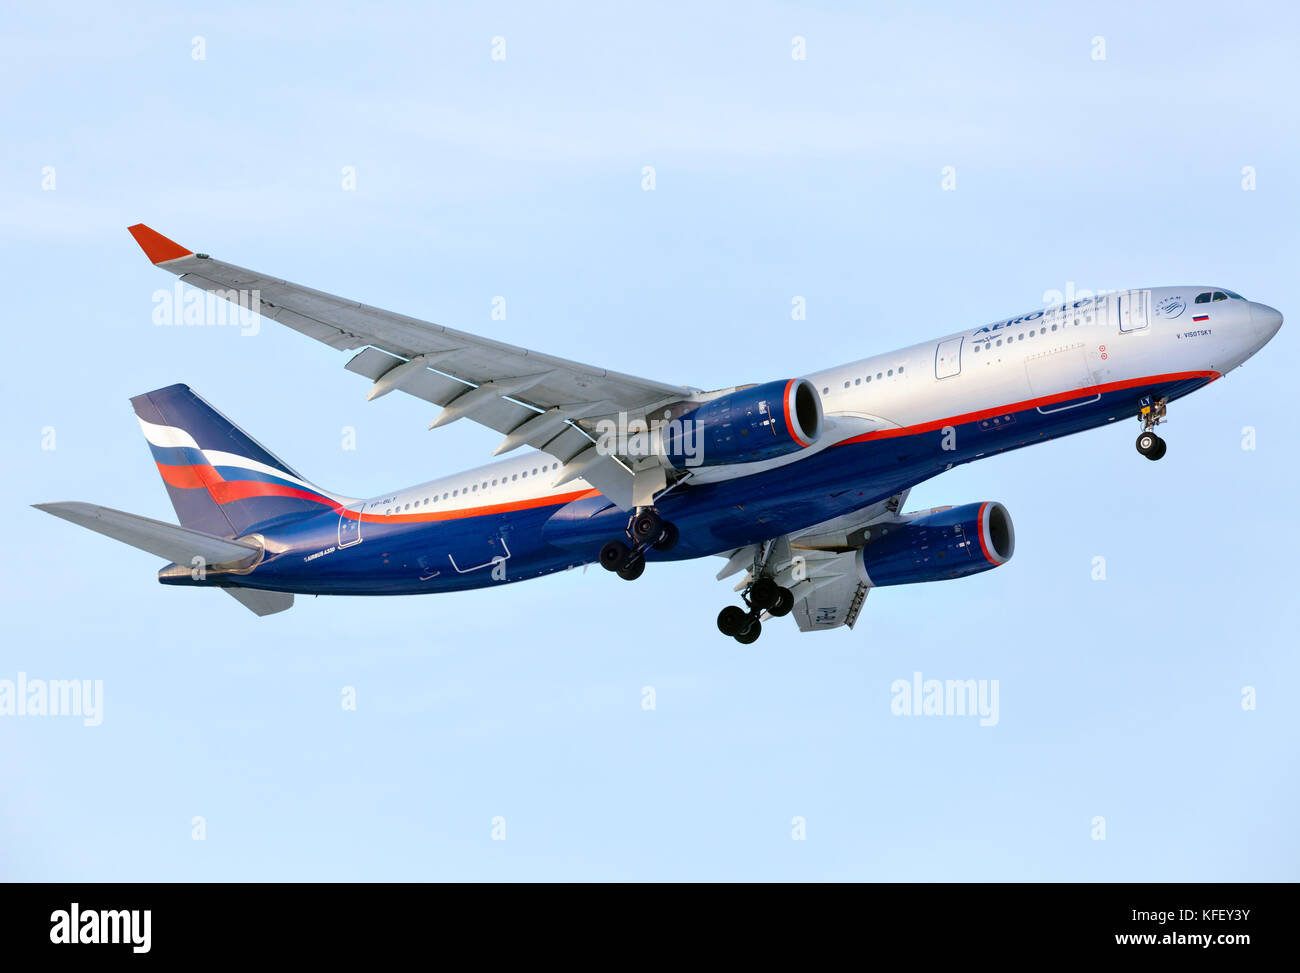 Moscow, Russia - Feb 11, 2011: Airbus A330 of Aeroflot airline landing in Moscow airport, Russia - Stock Image